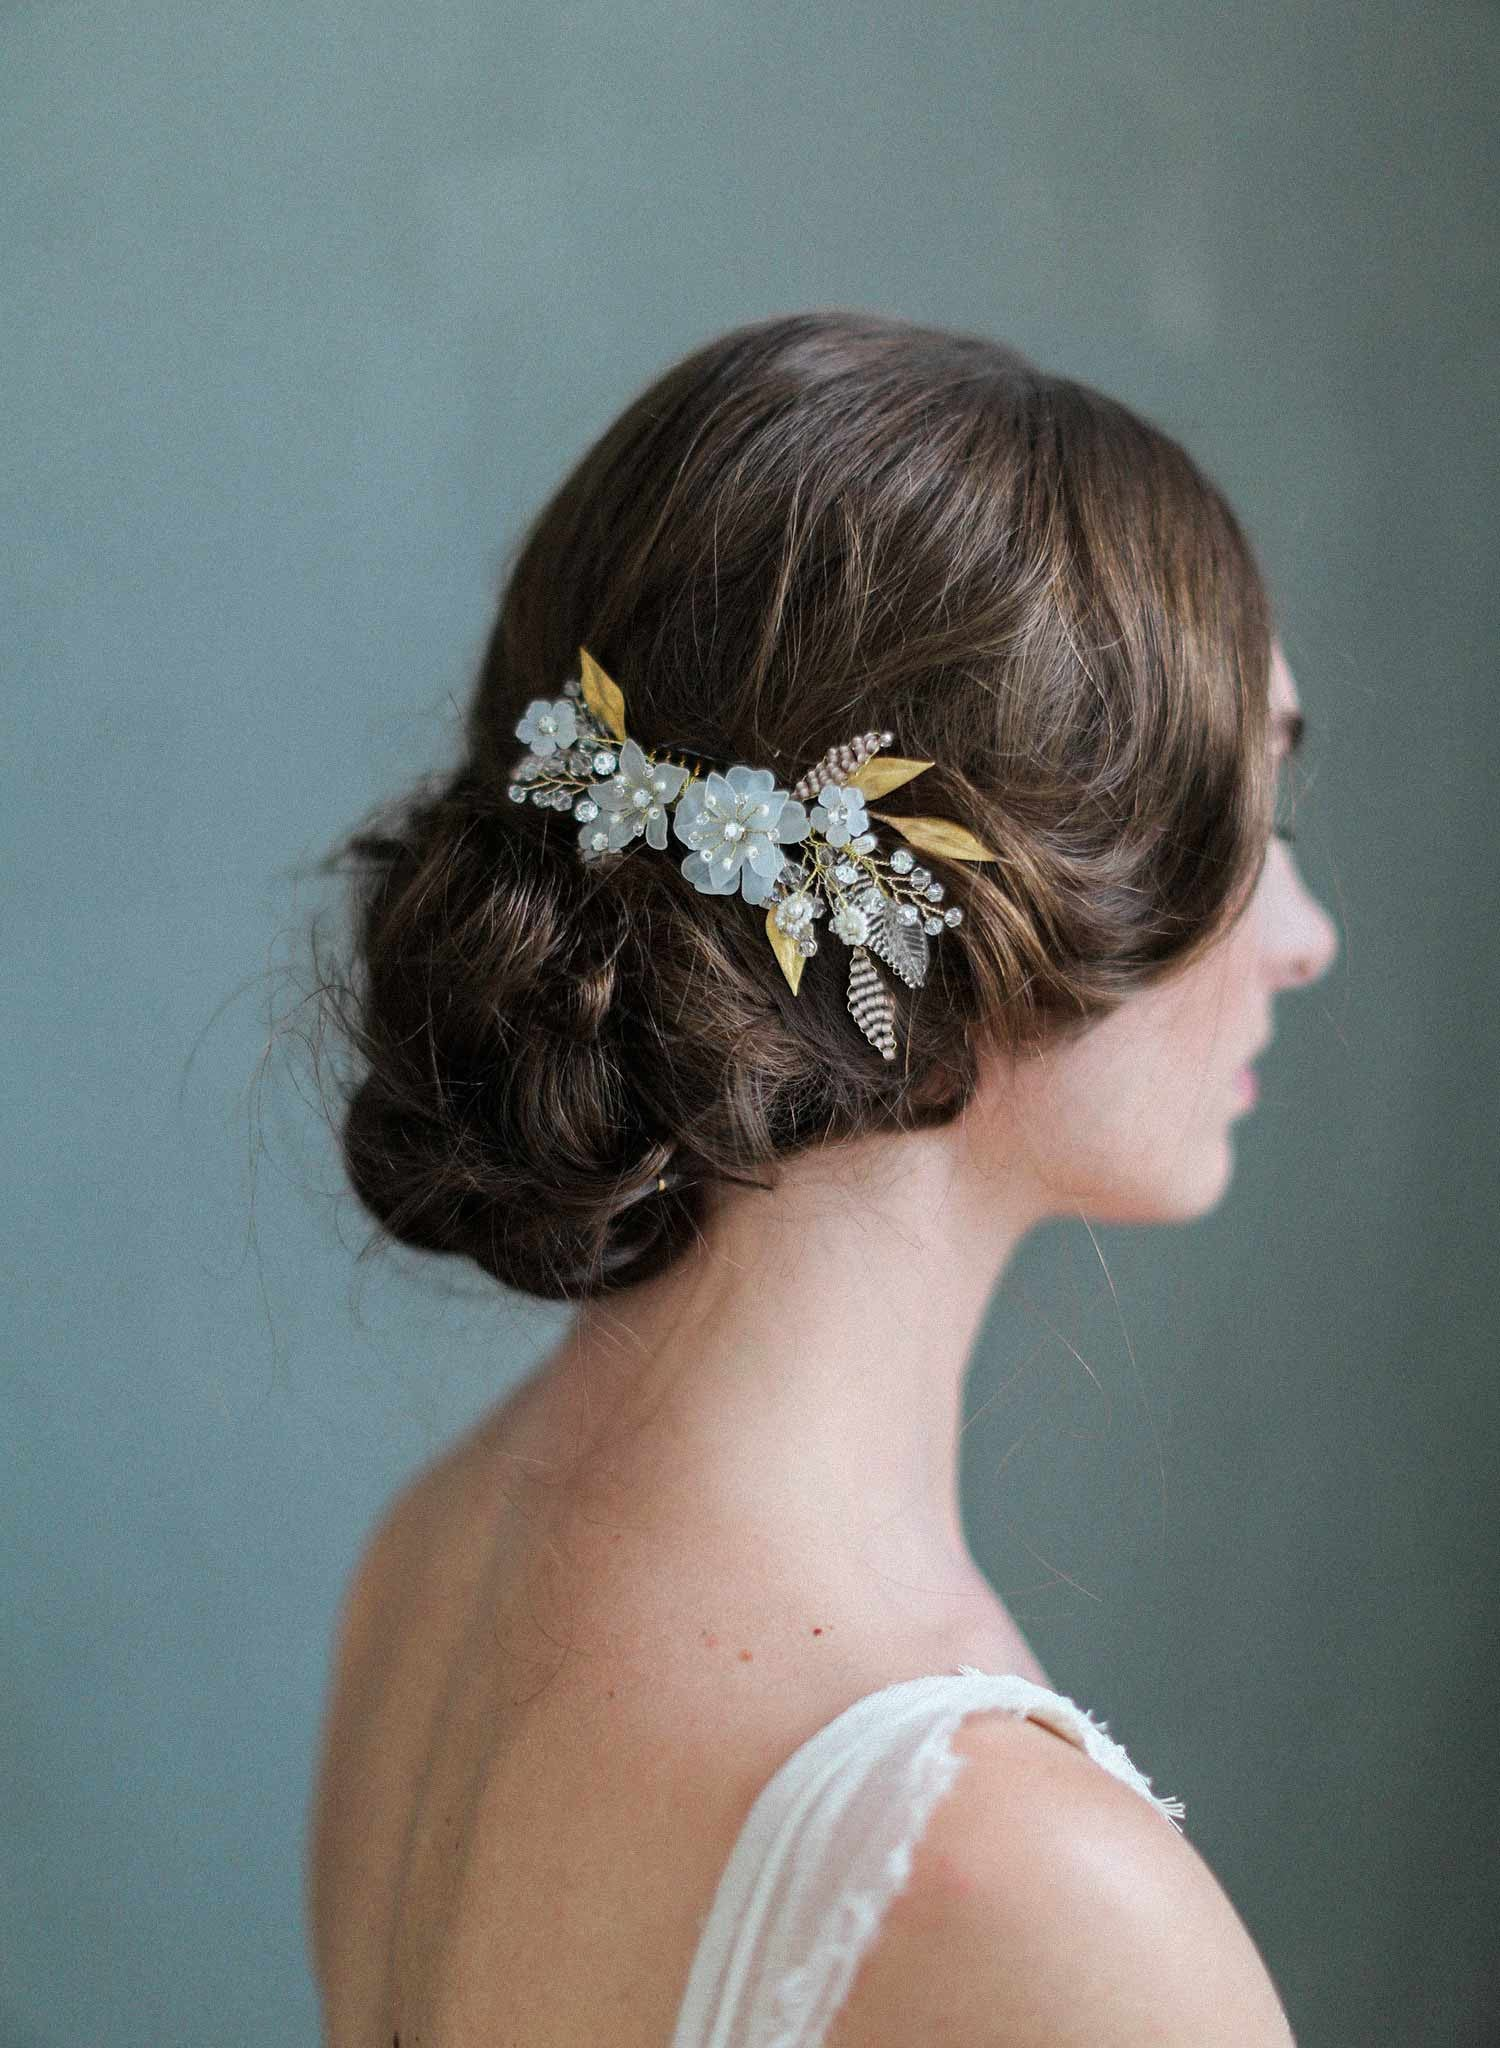 Mystic floral crystal hair comb - Style #716